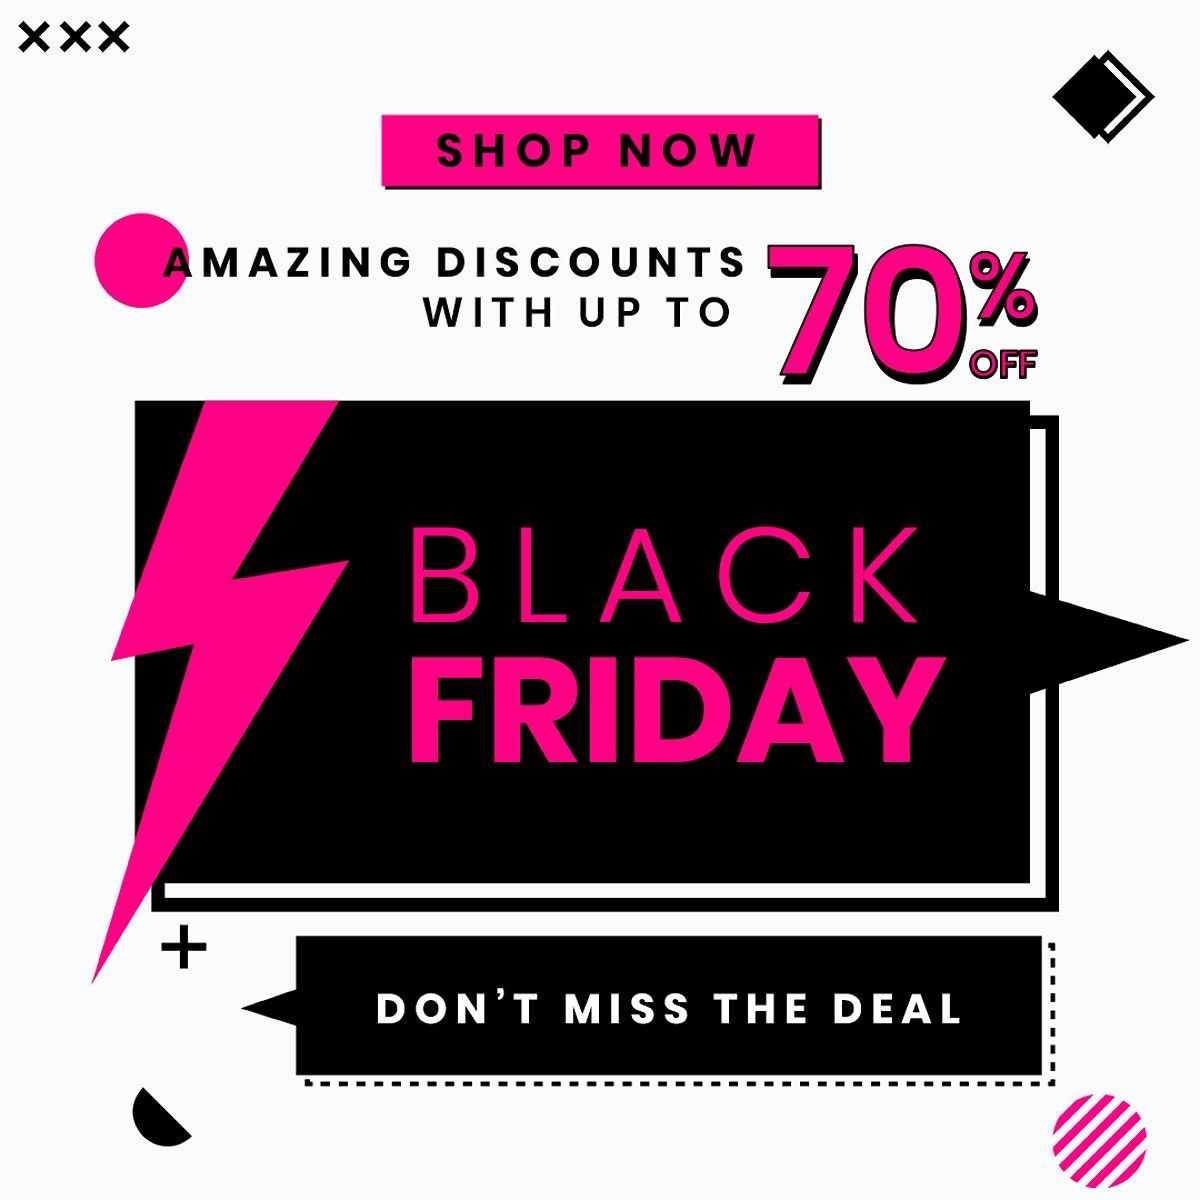 Download Premium Psd Of Bold Text Psd Black Friday 70 Off Promotional Poster Template Free Poster Template Black Friday